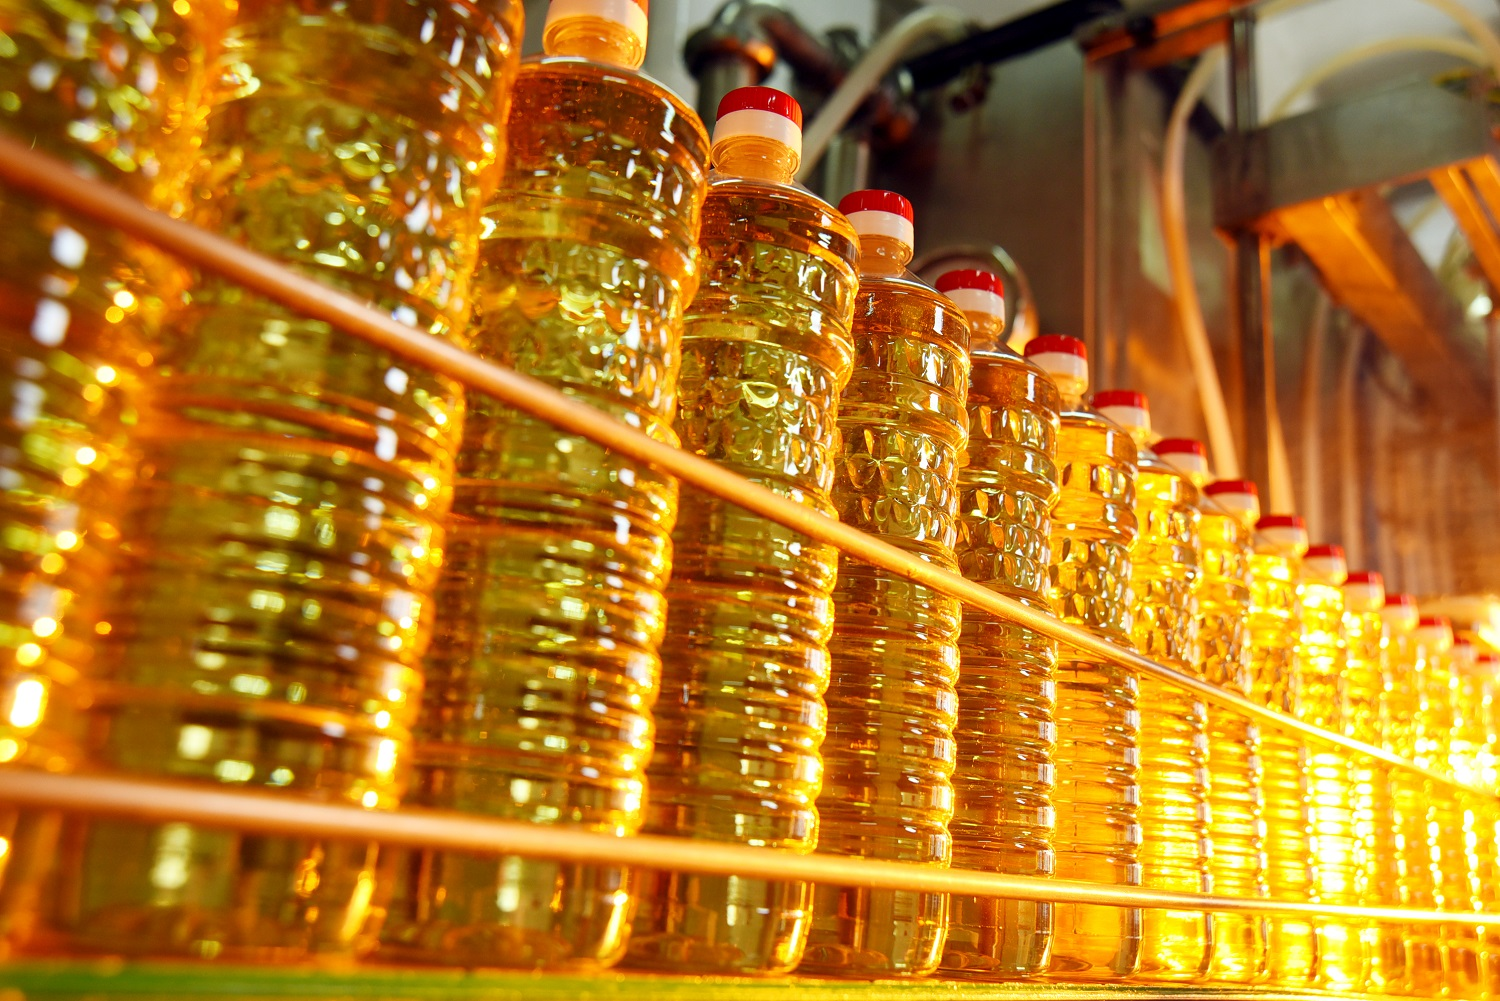 Ukraine increased the production of sunflower oil by 17%